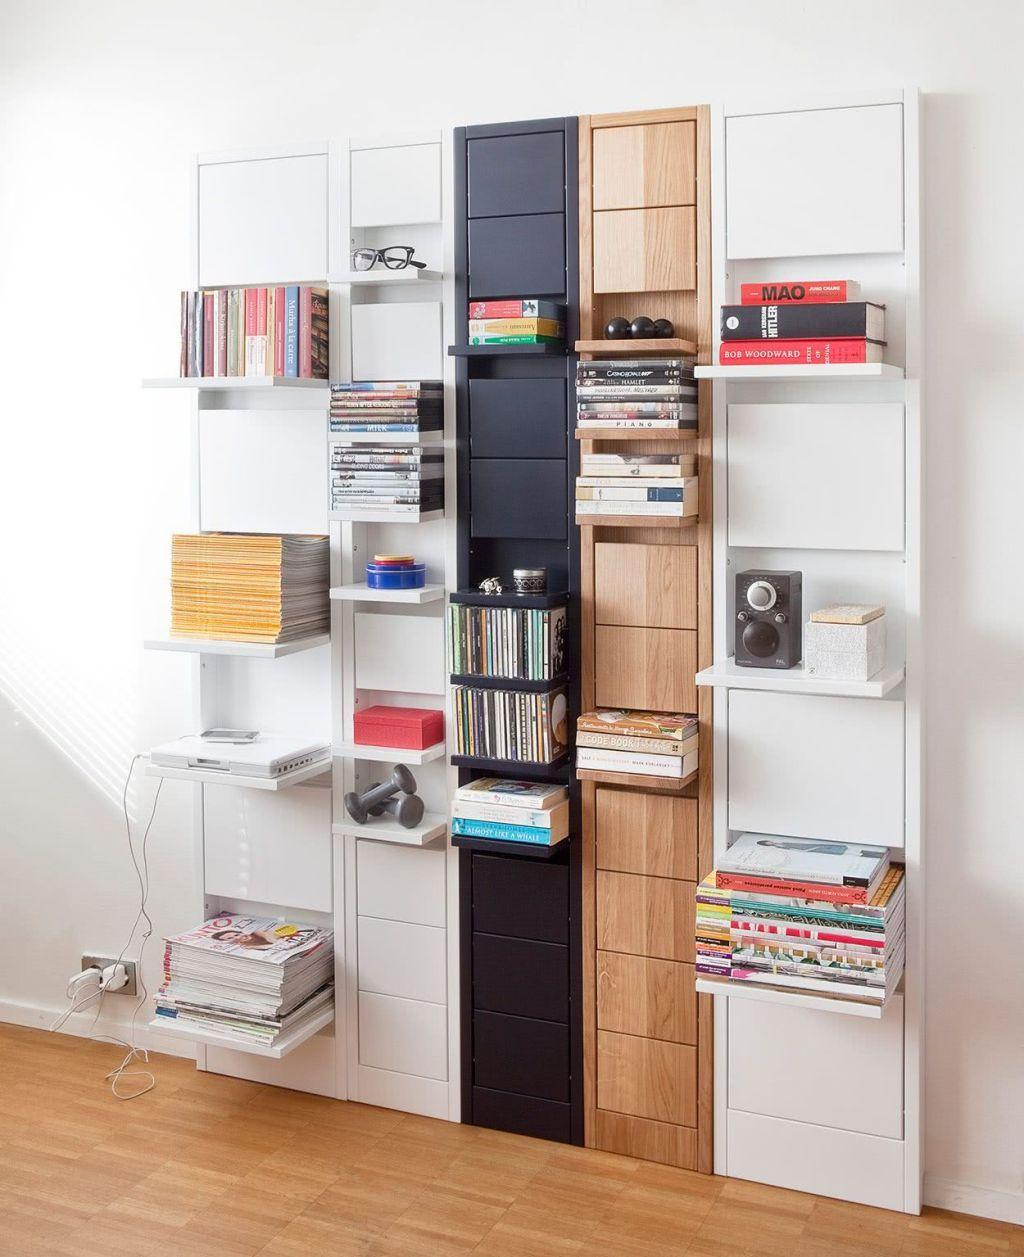 Creative Shelves: 60 Modern and Inspiring Solutions 18